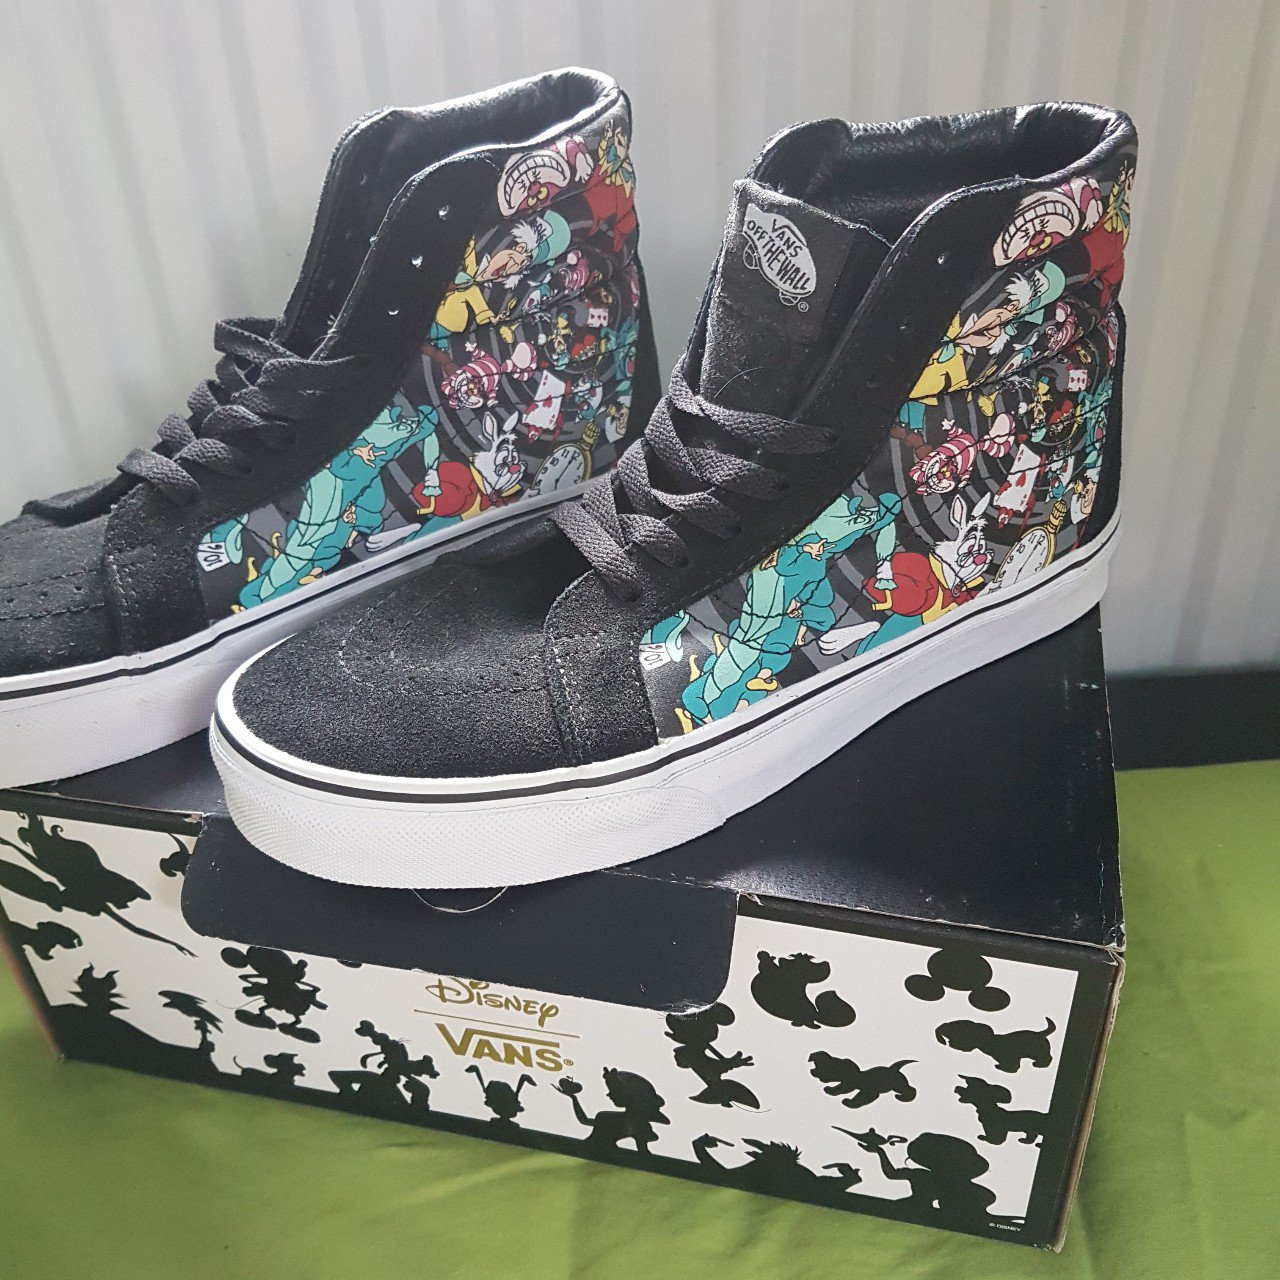 Vans x Alice In Wonderland Disney Sk8-Hi Rabbit Hole Skate - Depop 54d9781f2e91f